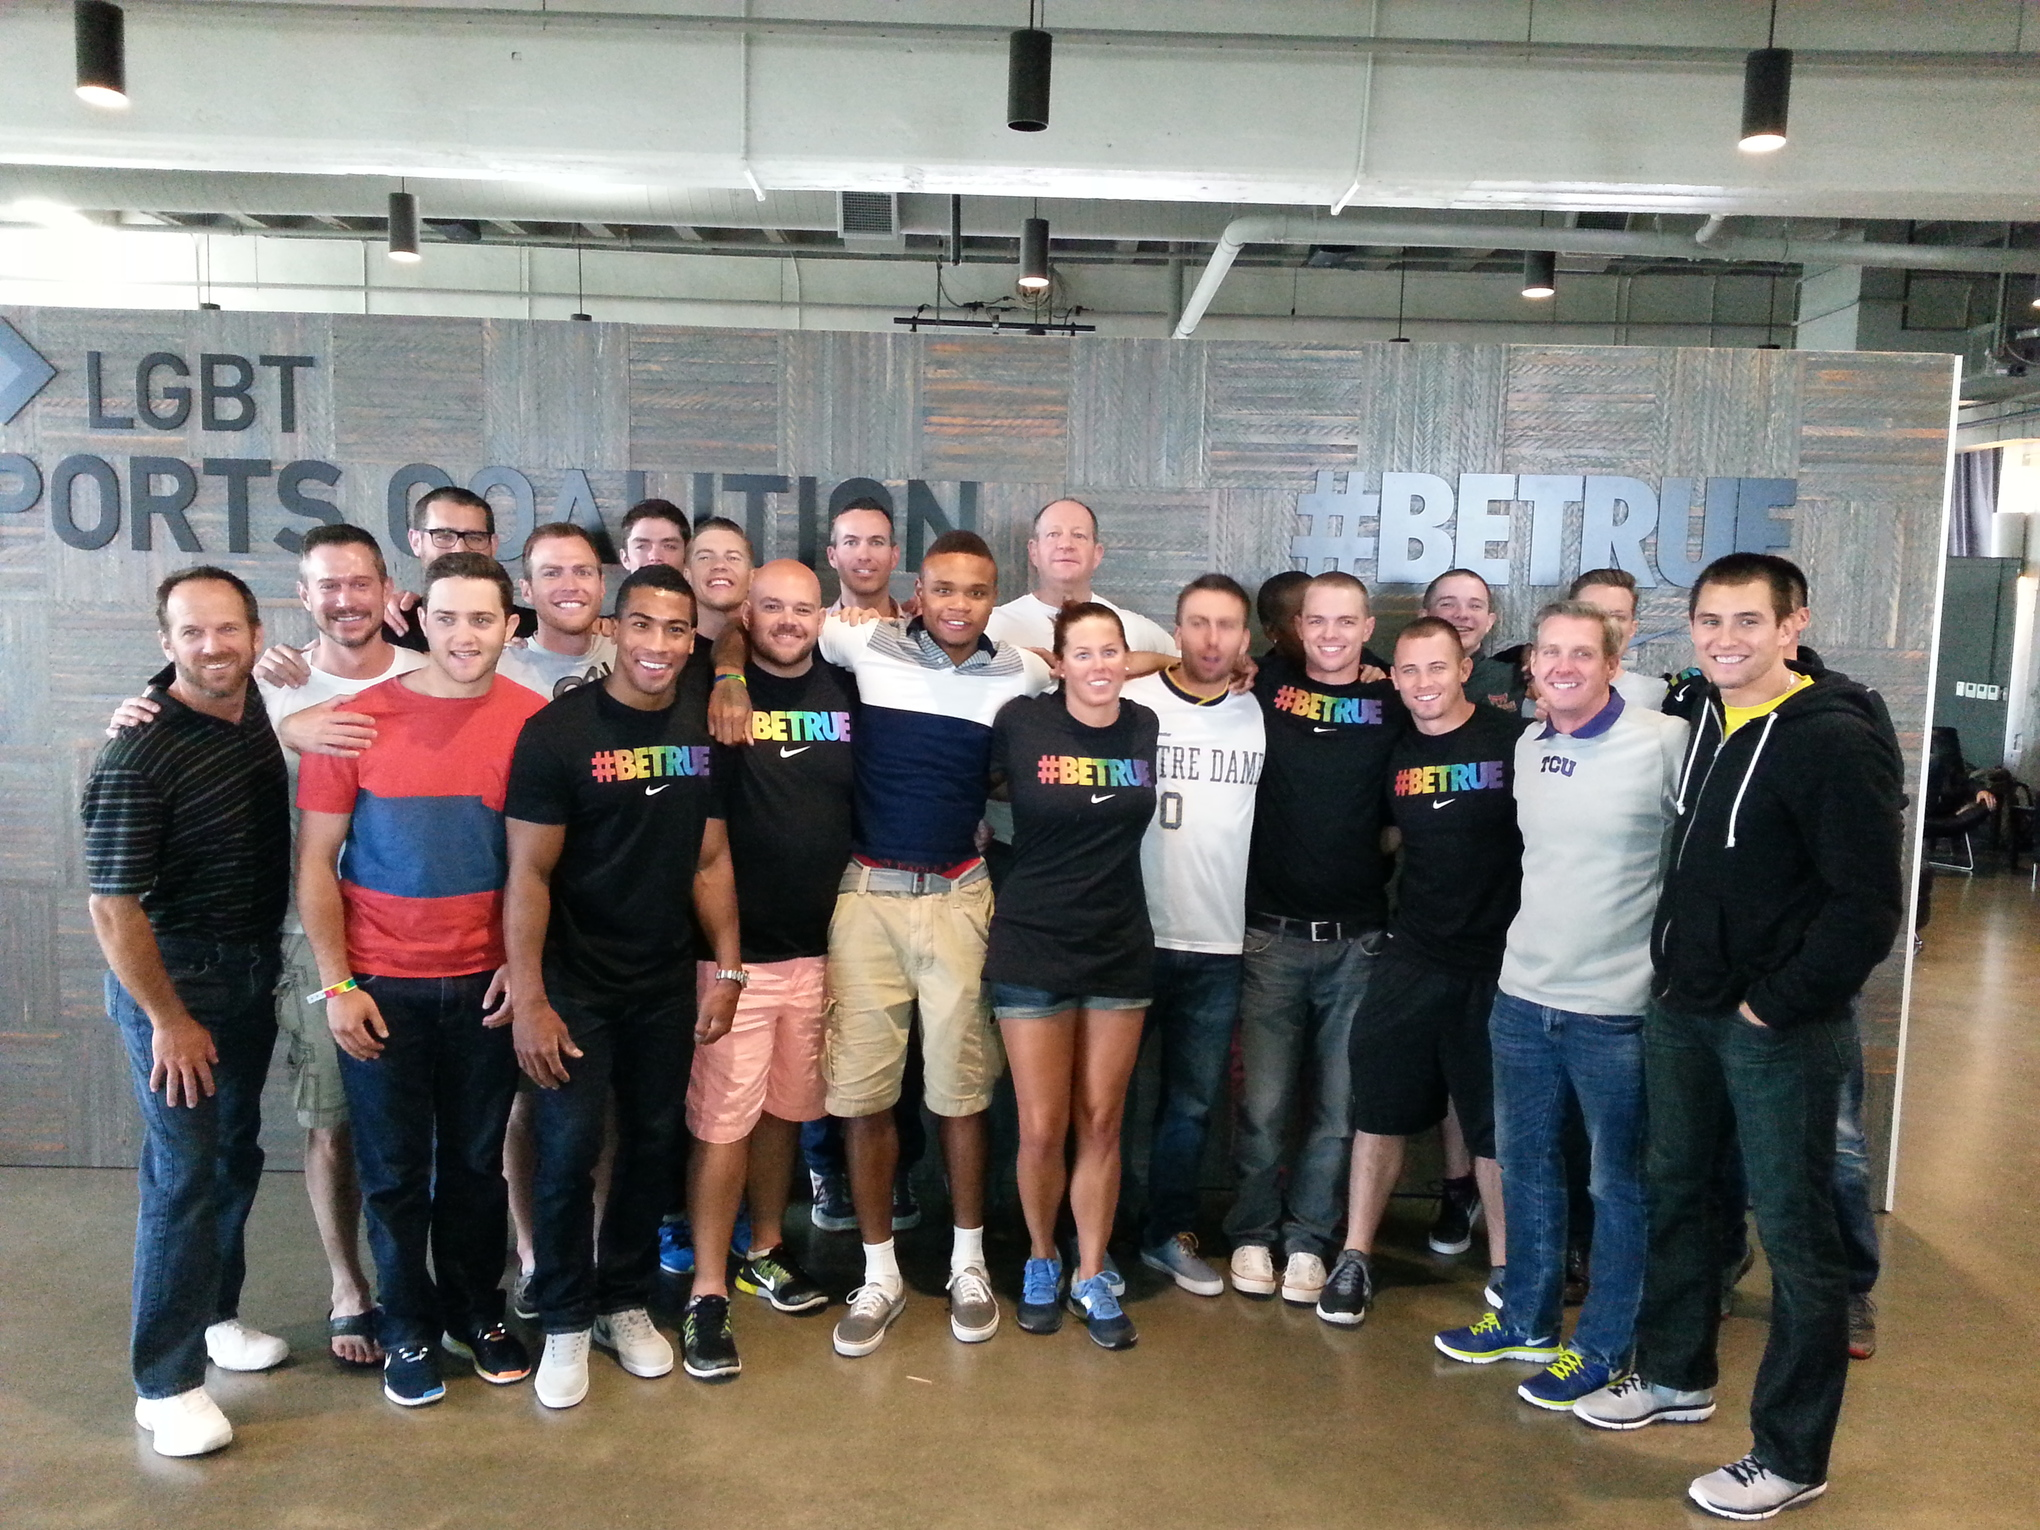 Some of the athletes who have come out on Outsports attended the 2014 Nike LGBT Sports Summit.